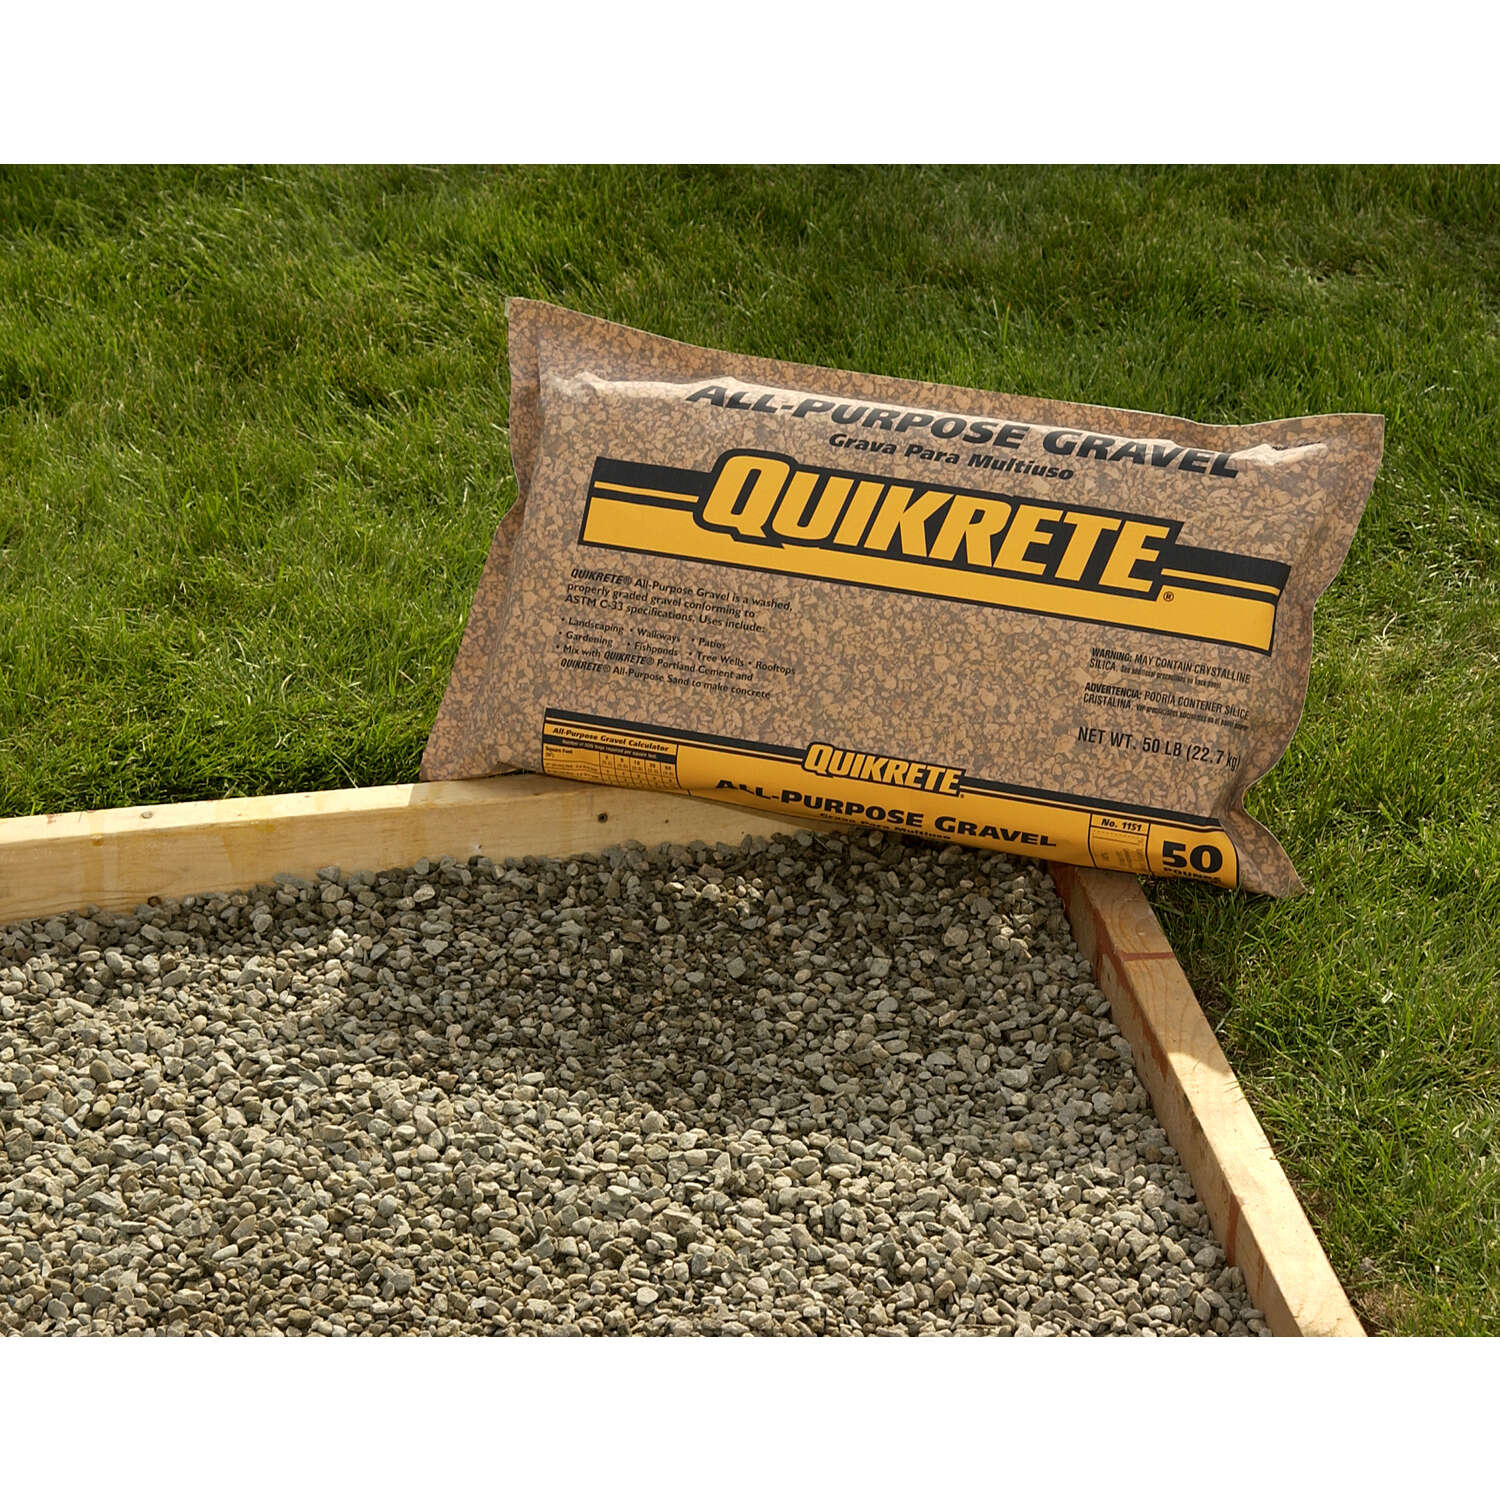 Quikrete All Purpose Gravel 50 Lb Ace Hardware Trailer Wiring Harness Tractor Supply